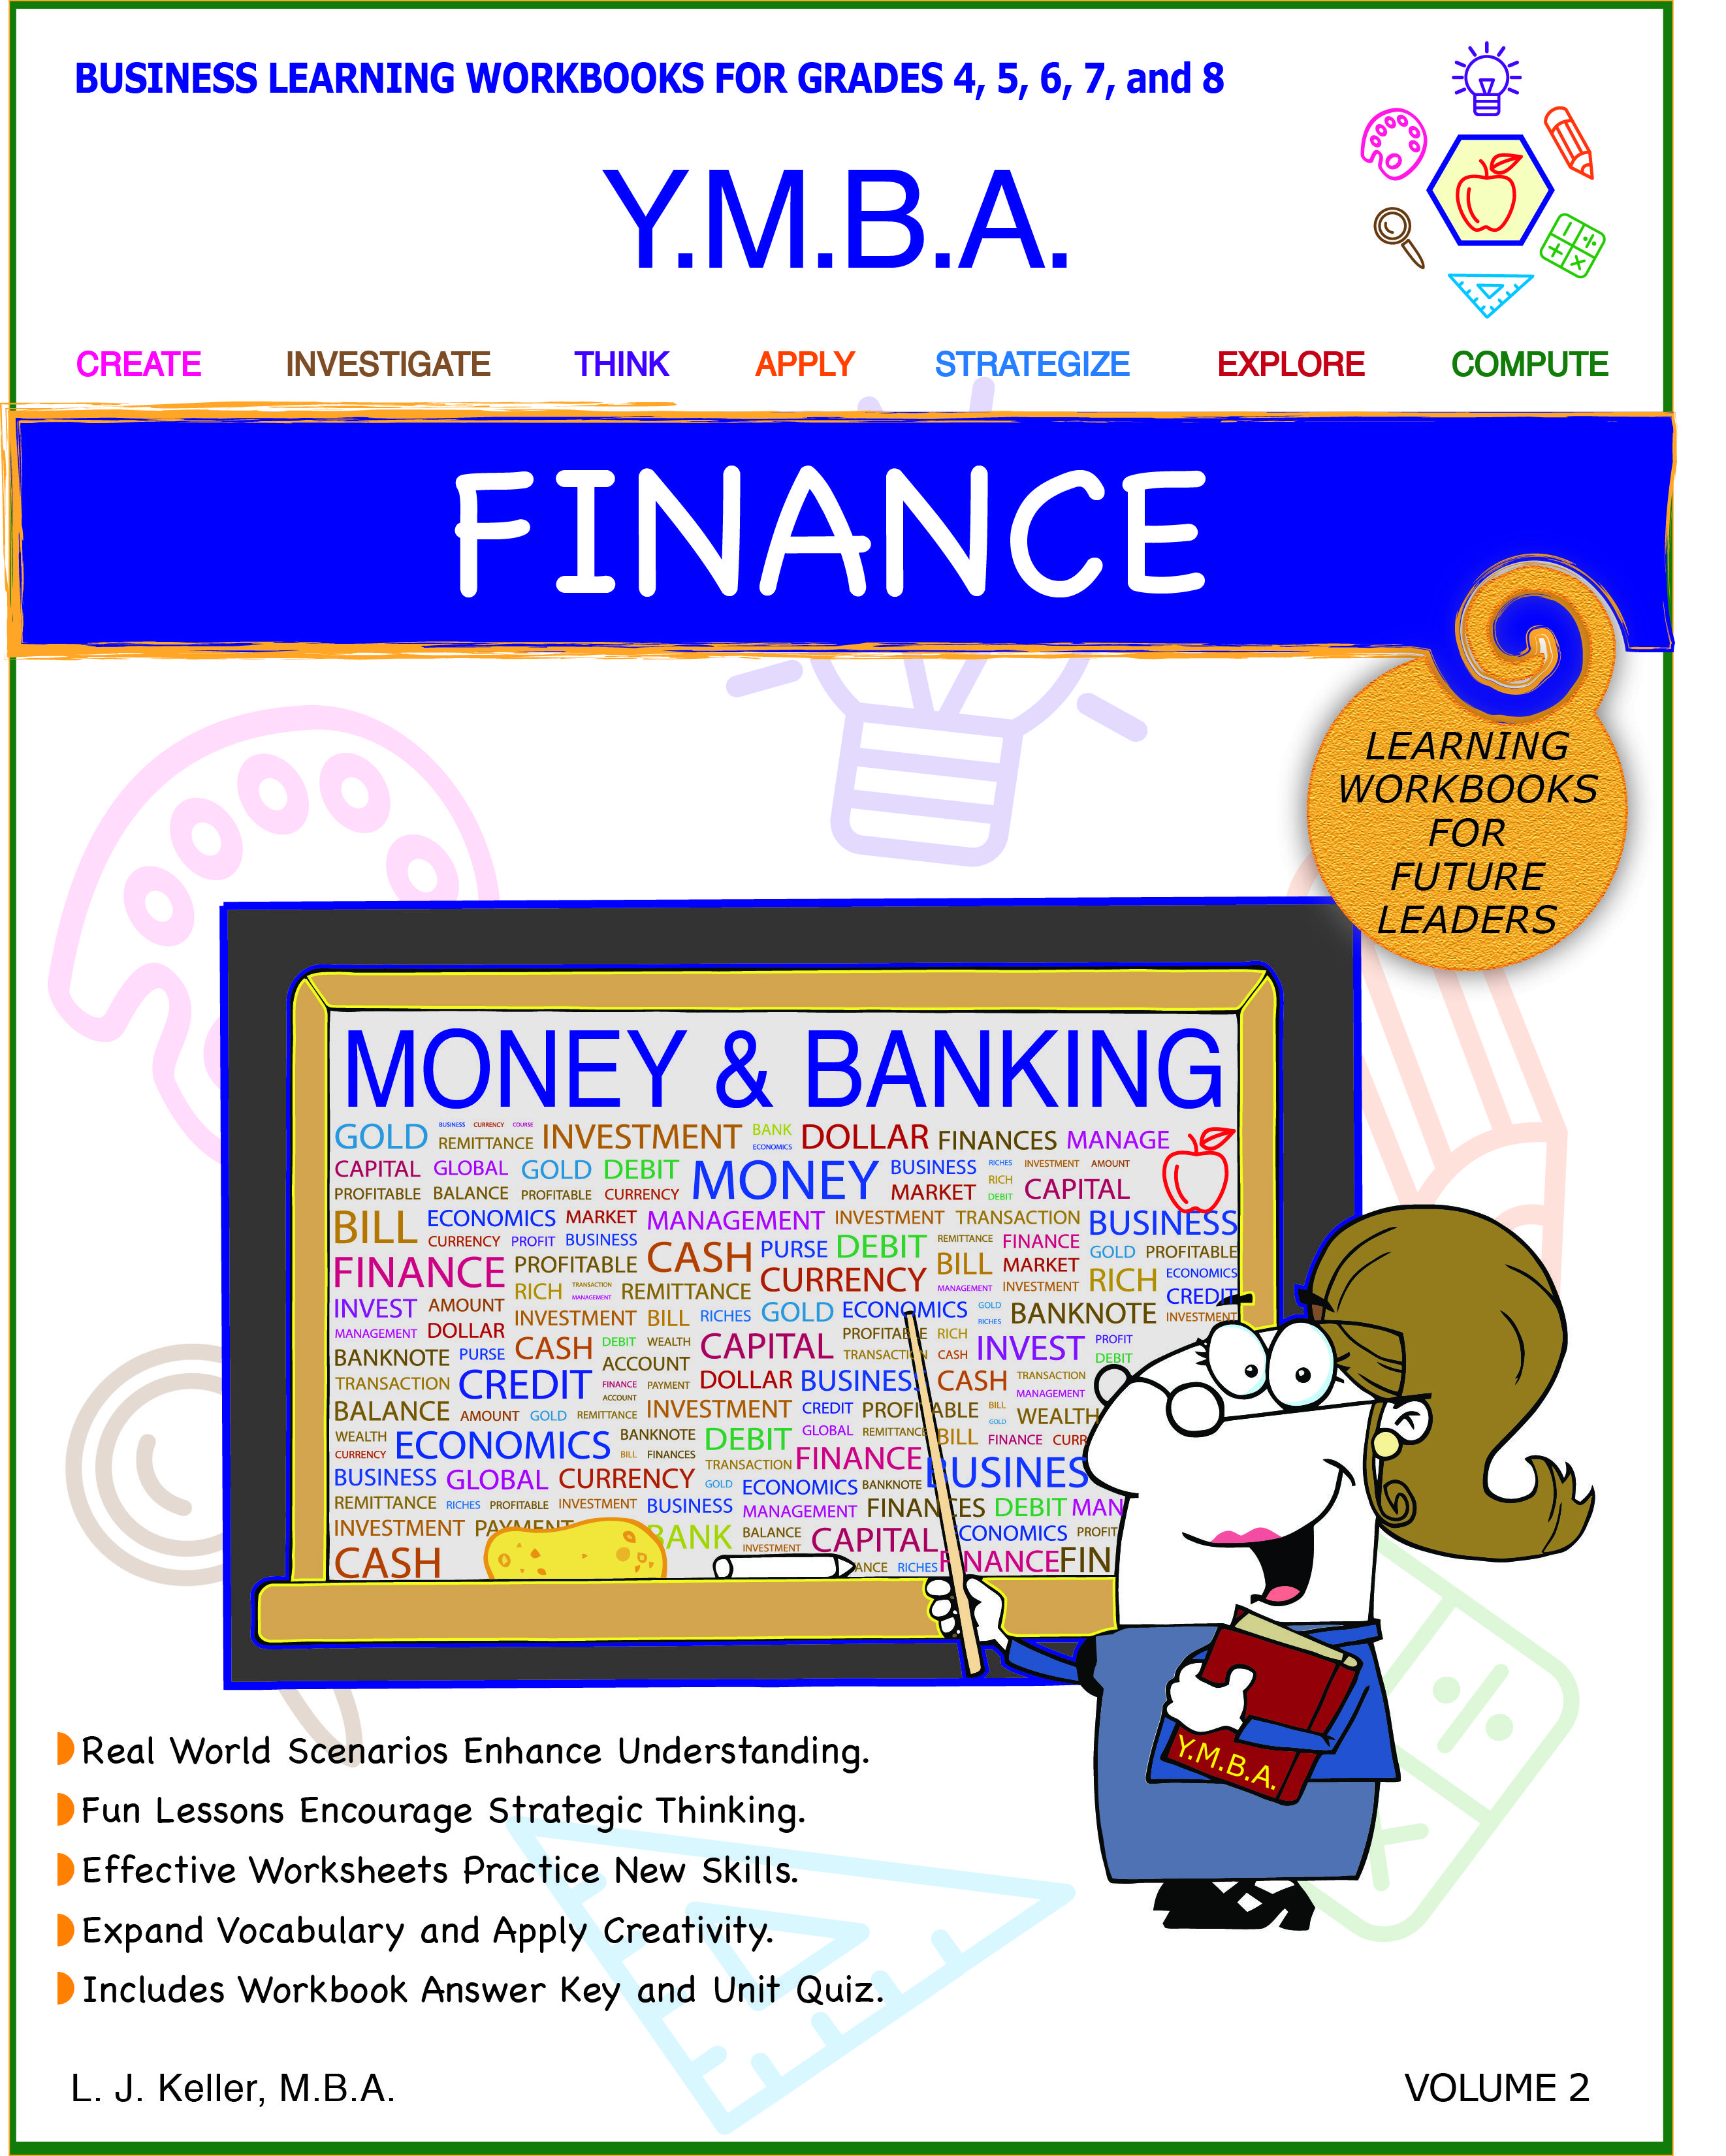 Ymba Finance Workbook Now Available Download Free Sample Worksheets At Www Ymbagroup Com And Enj Consumer Math Masters In Business Administration Life Skills [ 3302 x 2643 Pixel ]